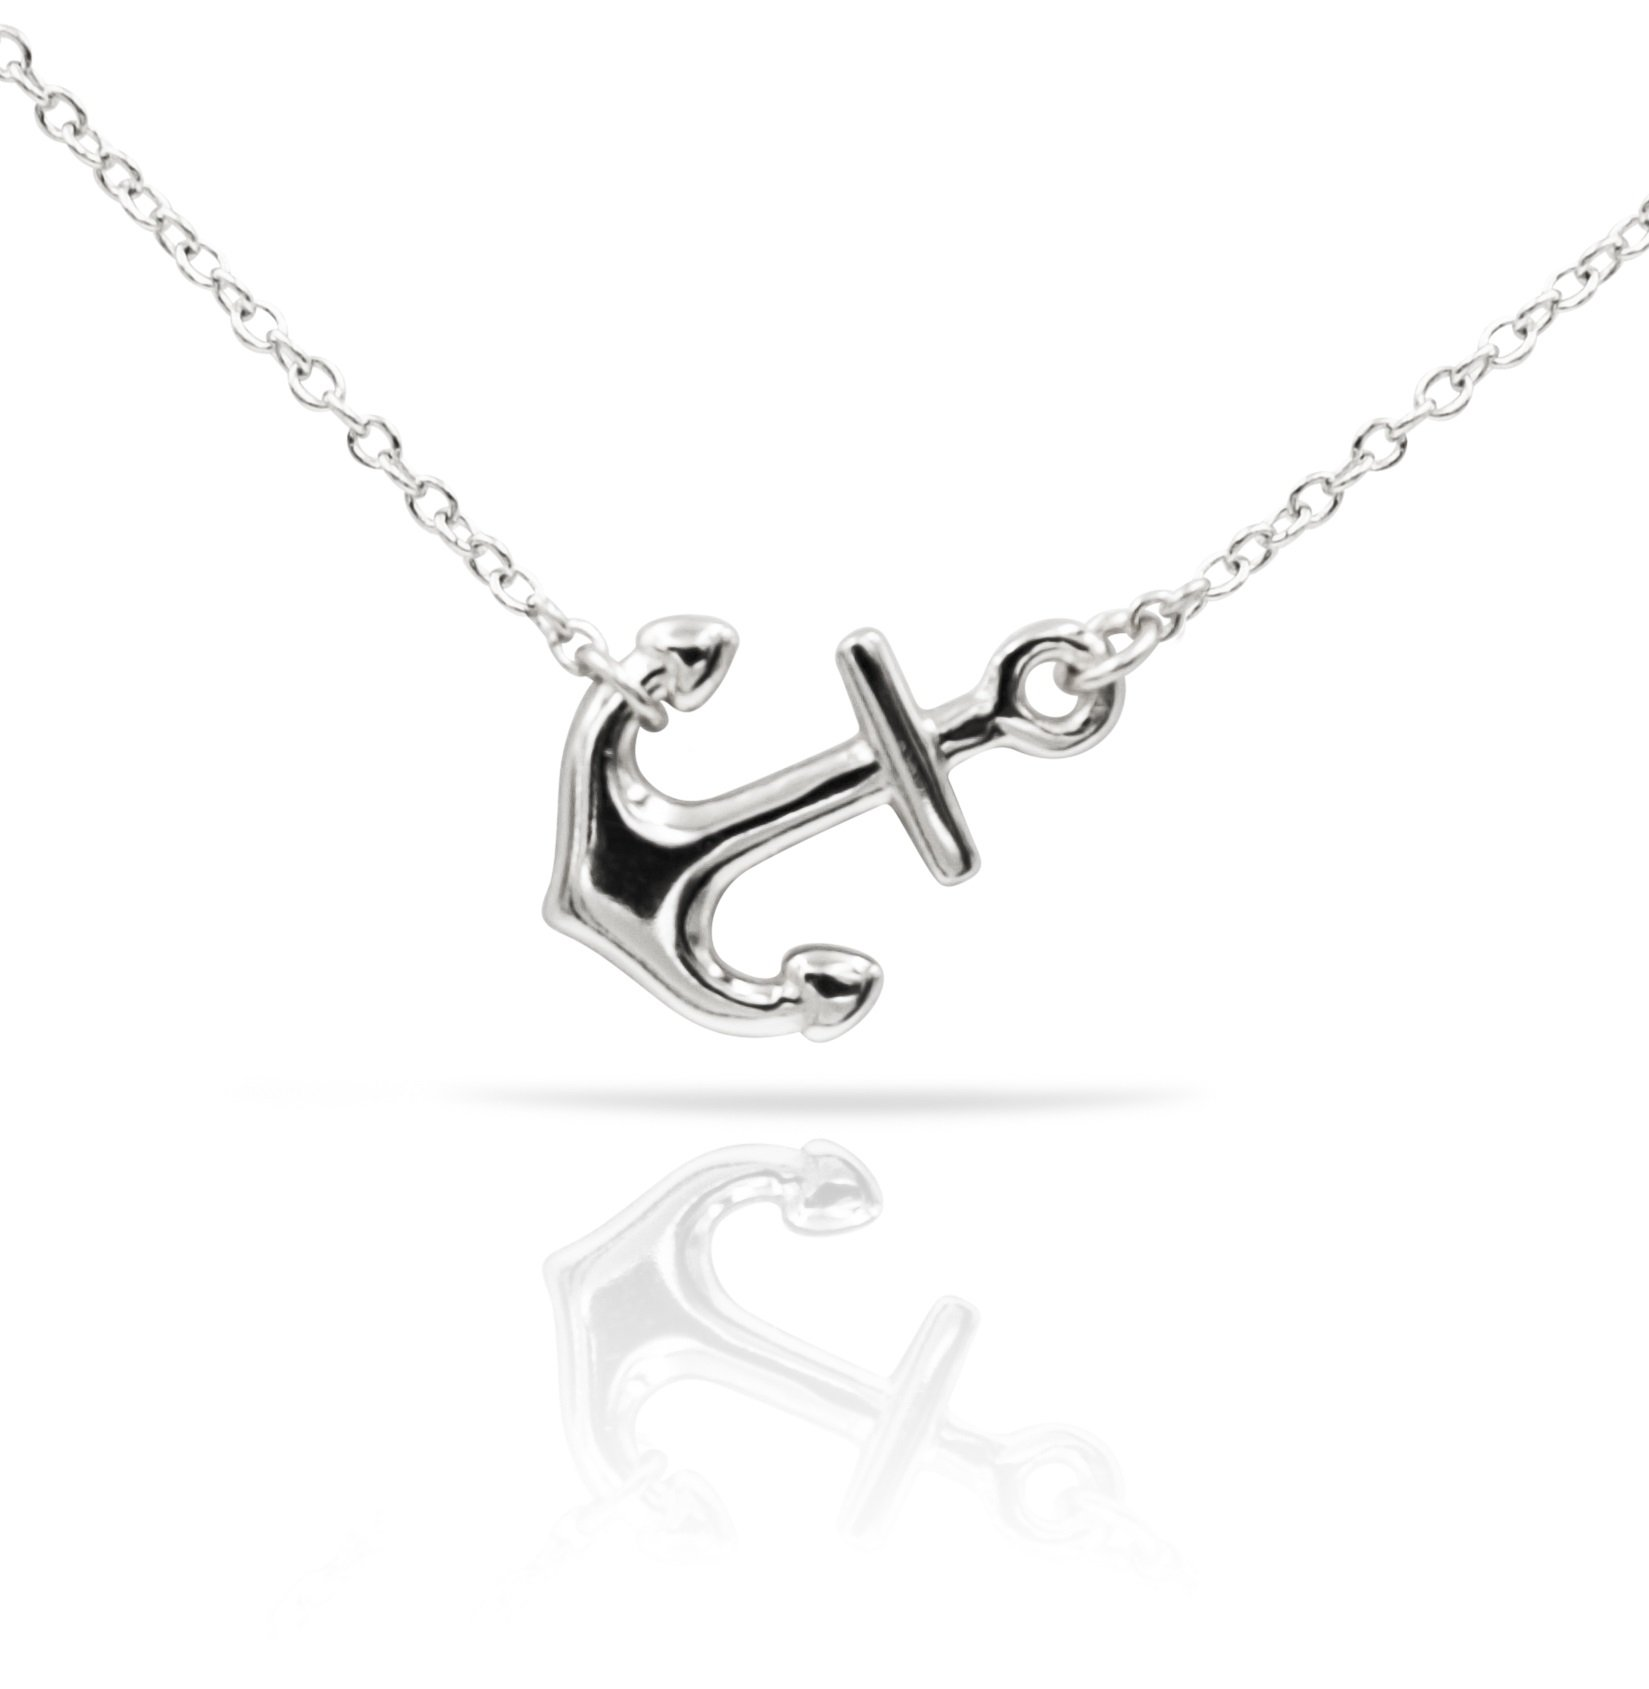 Sterling Silver Pendant Necklace with Polished Sideways Anchor Charm, Plain 925 Silver, Adjustable Chain Length 16'' - 18'', with Jewelry Box